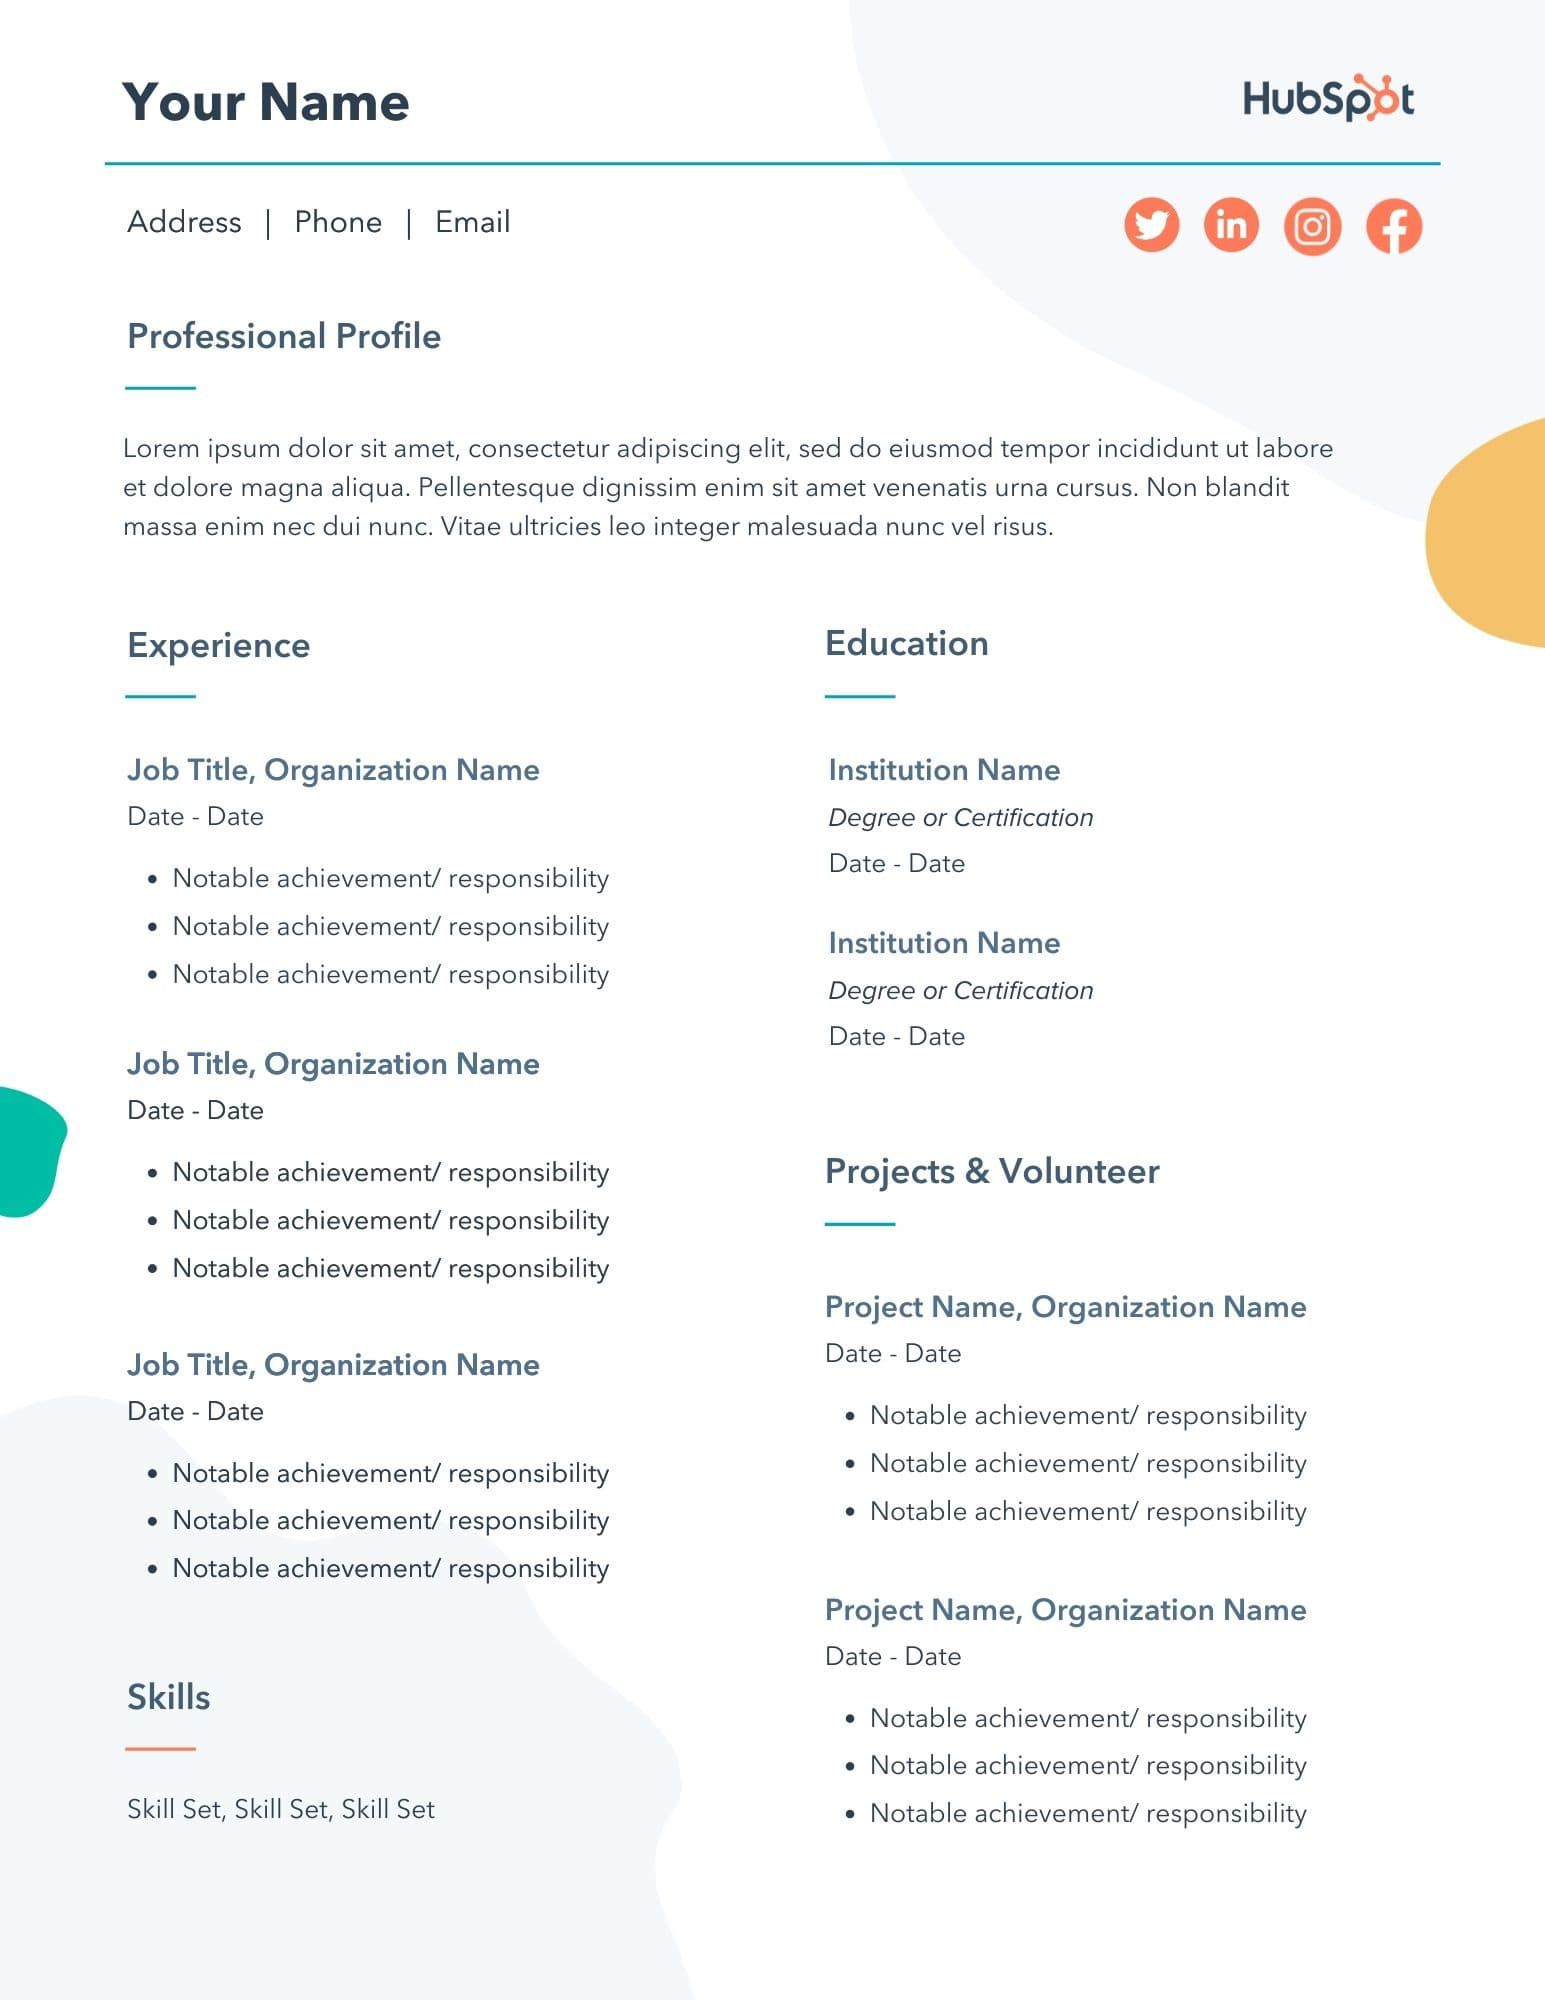 008 Phenomenal Create Resume Online Free Template Highest Quality Full